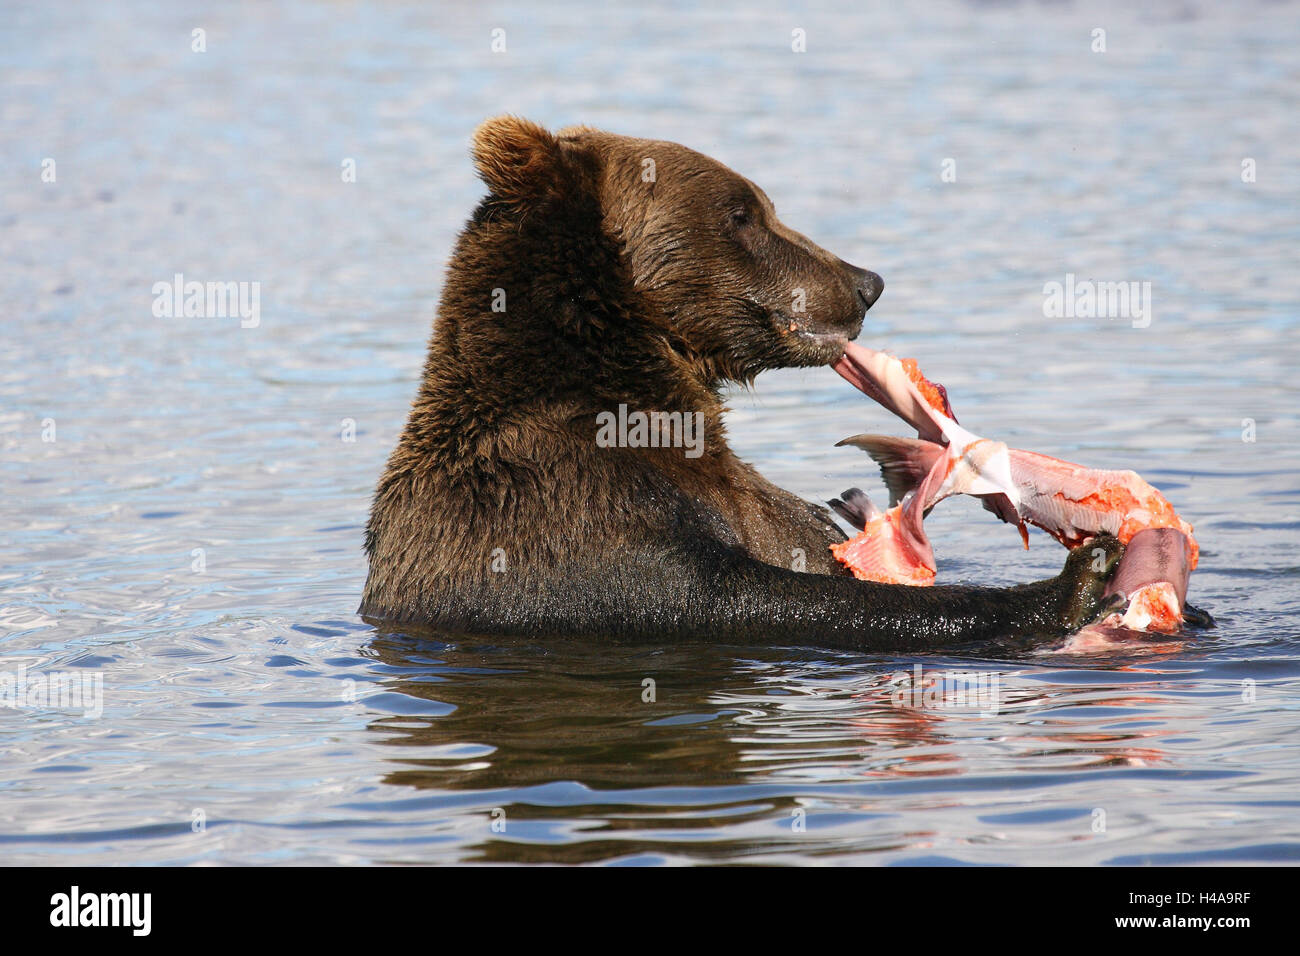 Grizzly, water, salmon, eat, - Stock Image